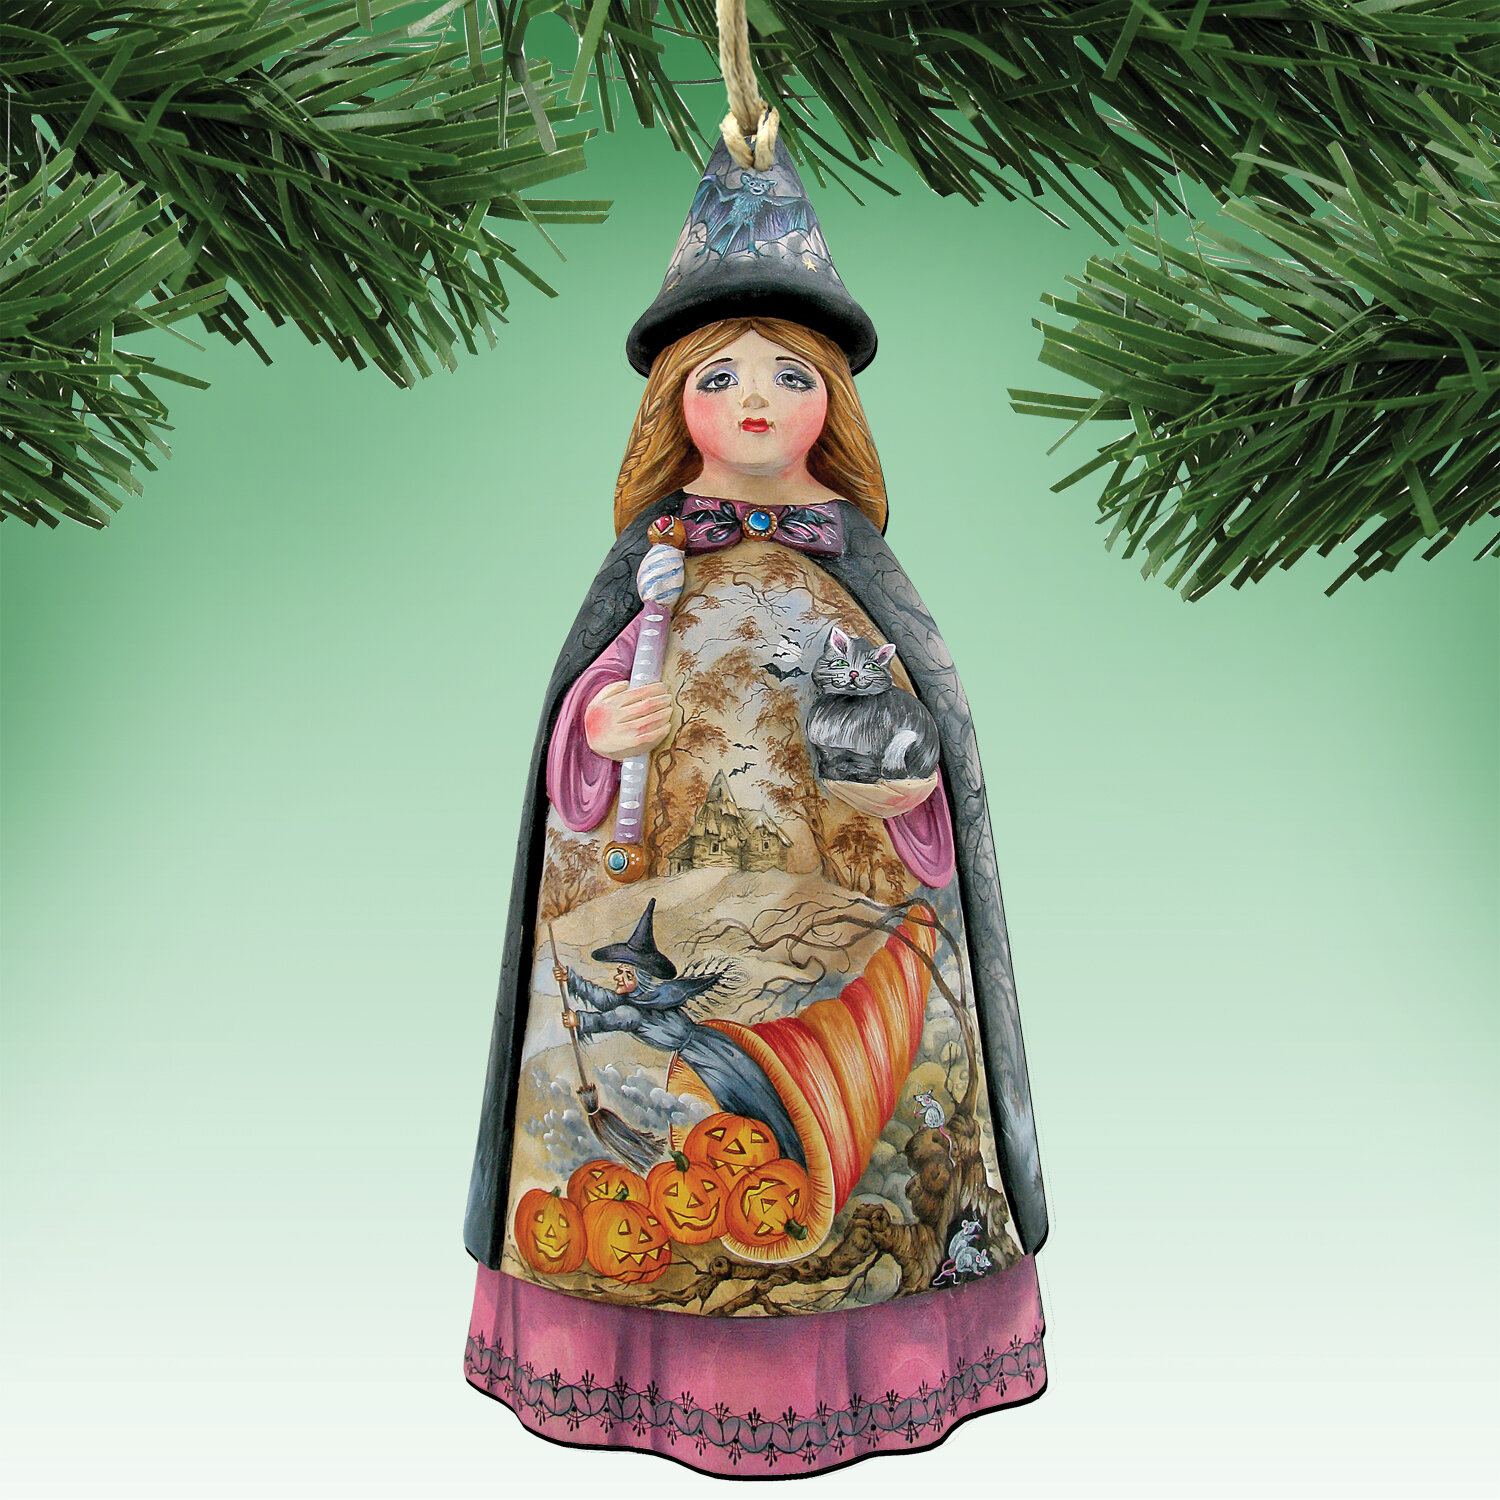 The Holiday Aisle Halloween Witch Shaped Wood Ornament Wayfair